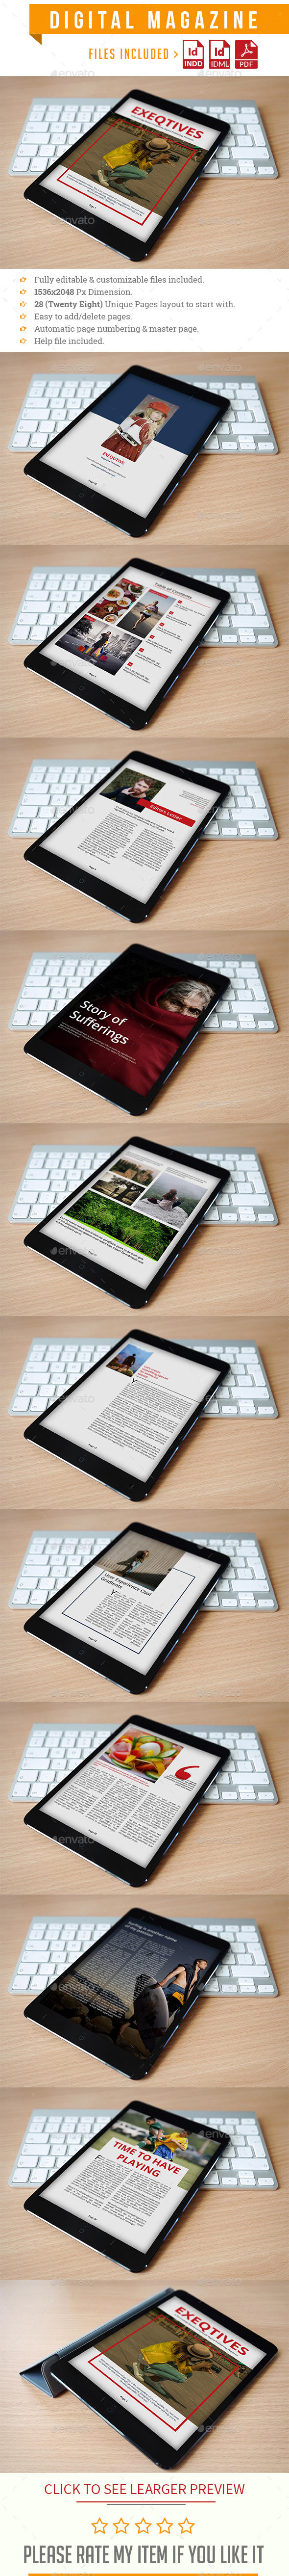 Digital Magazine - Digital Magazines ePublishing